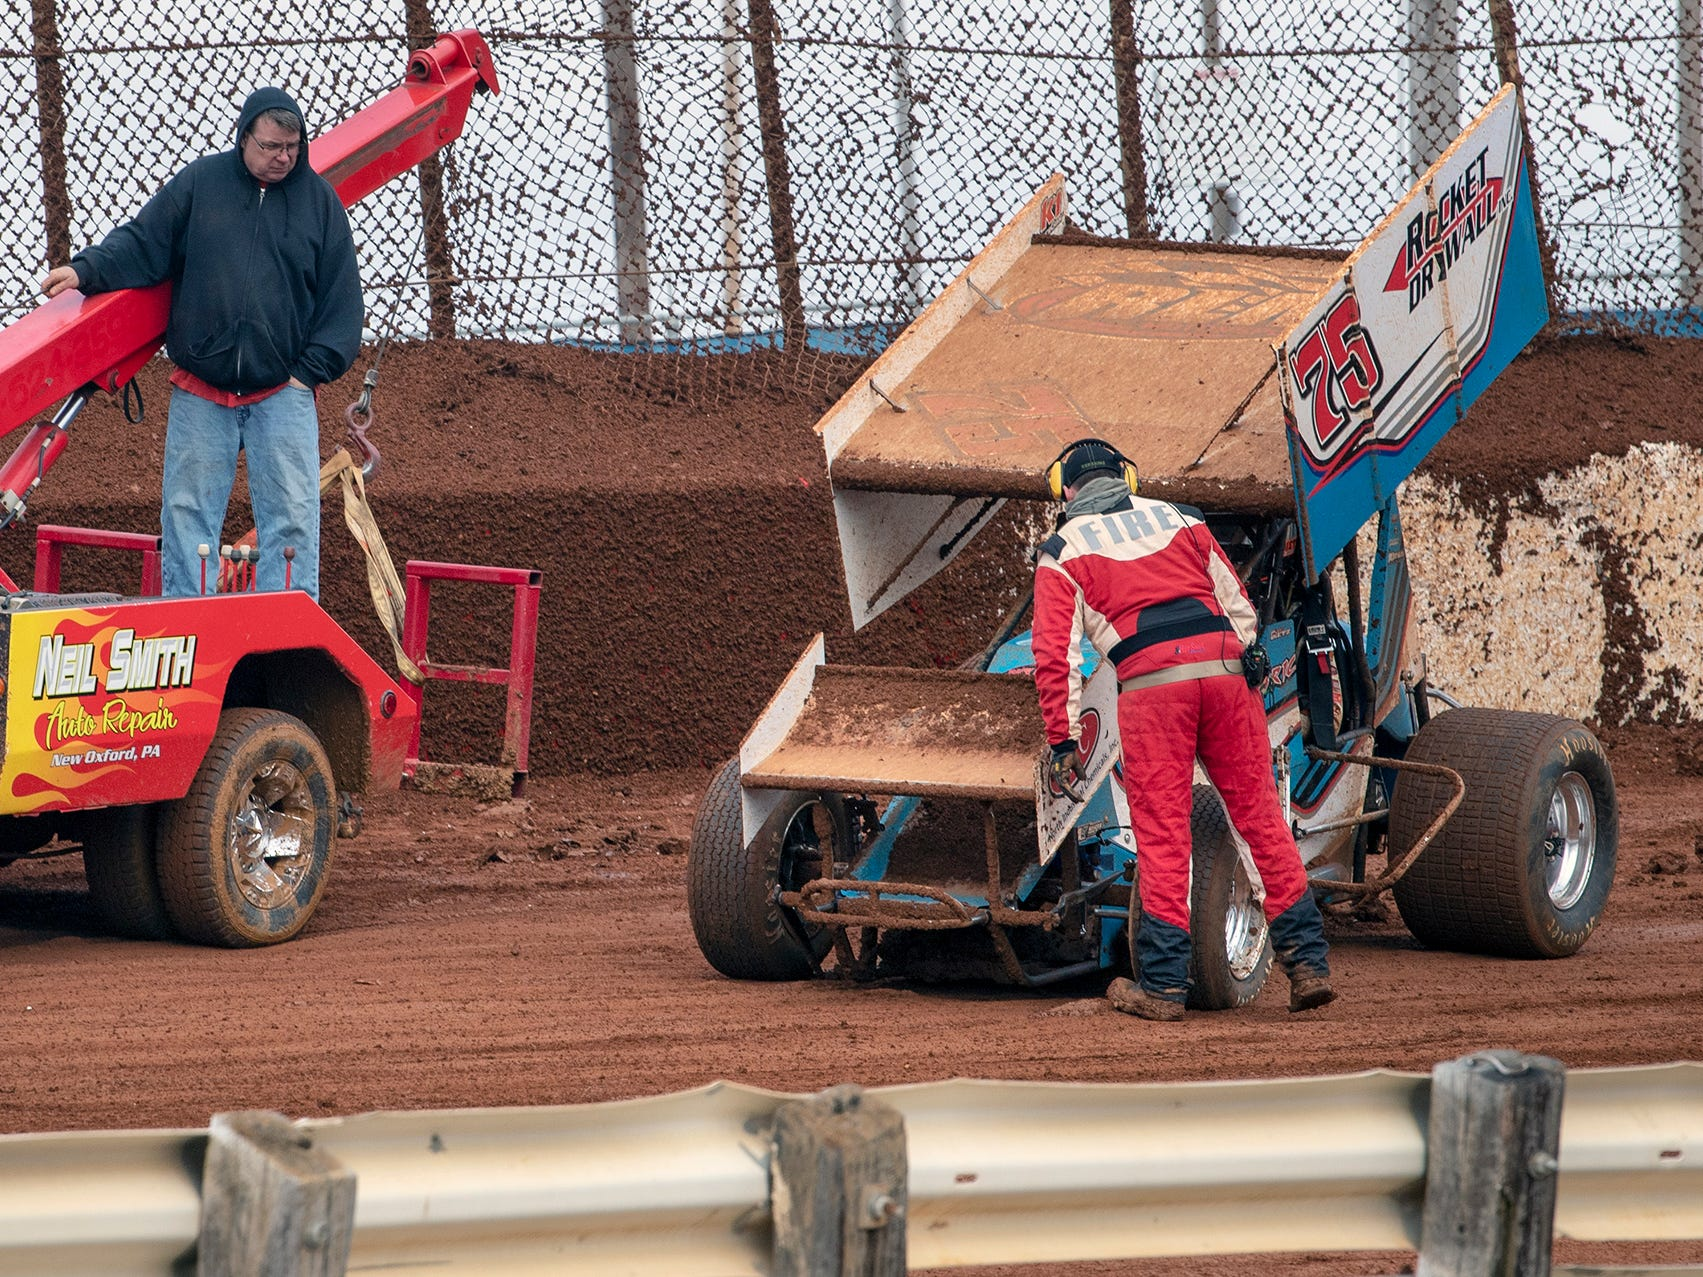 The 75 car driven by Chase Dietz is towed away after a crash during final laps of the Lincoln Speedway Ice Breaker 30 on Sunday near Abbottstown.